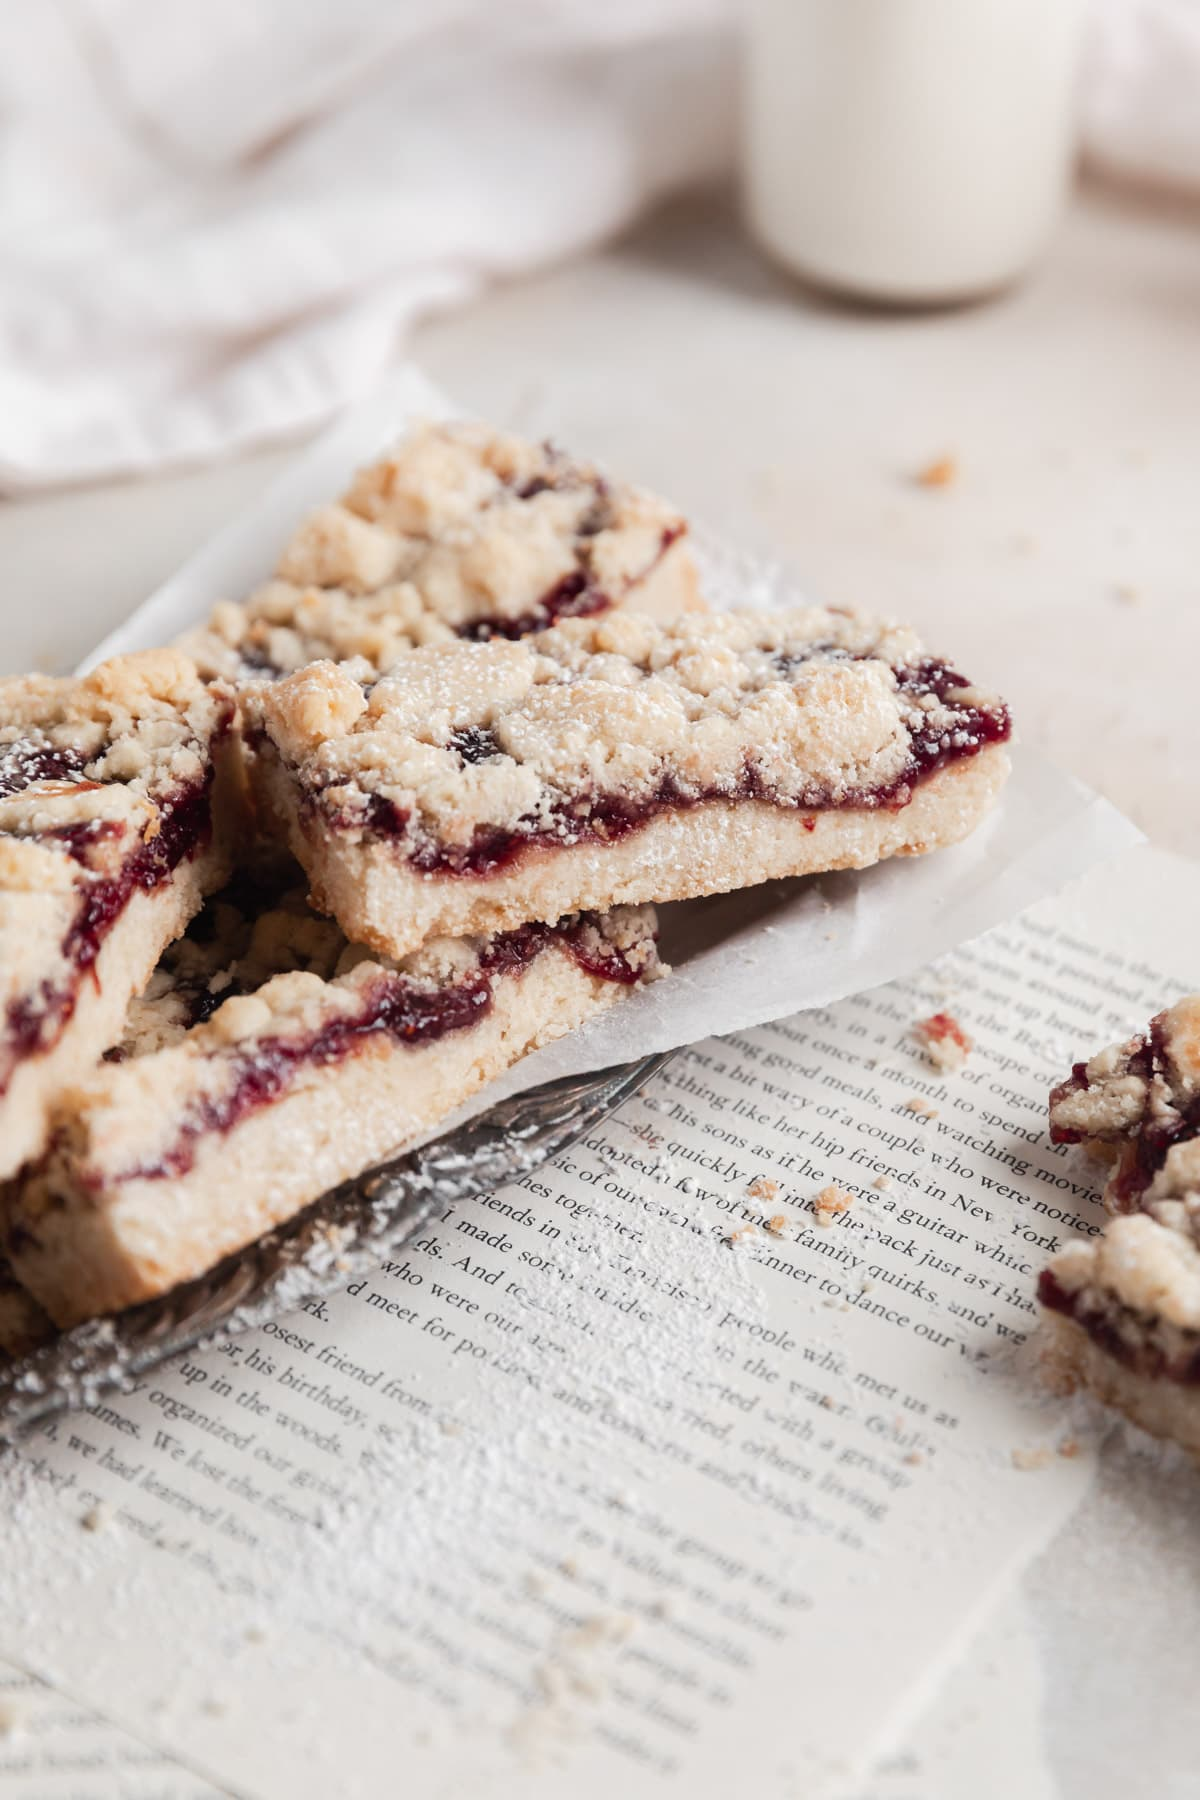 raspberry crumble bars cut into rectangles